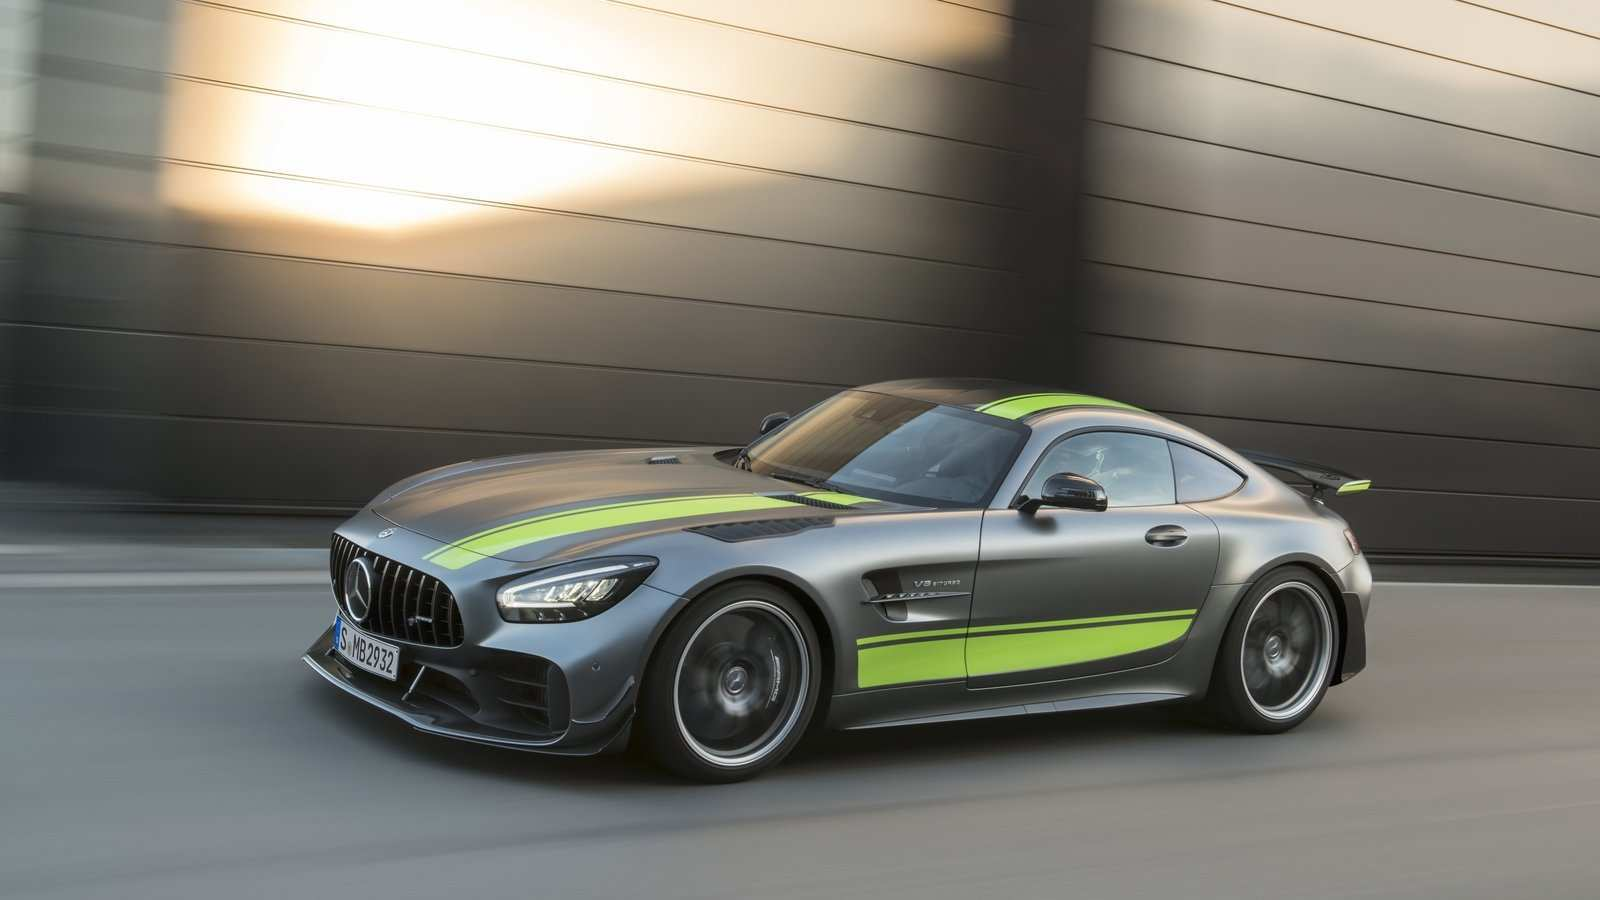 77 Best Review Mercedes Amg Gt 2020 Concept with Mercedes Amg Gt 2020